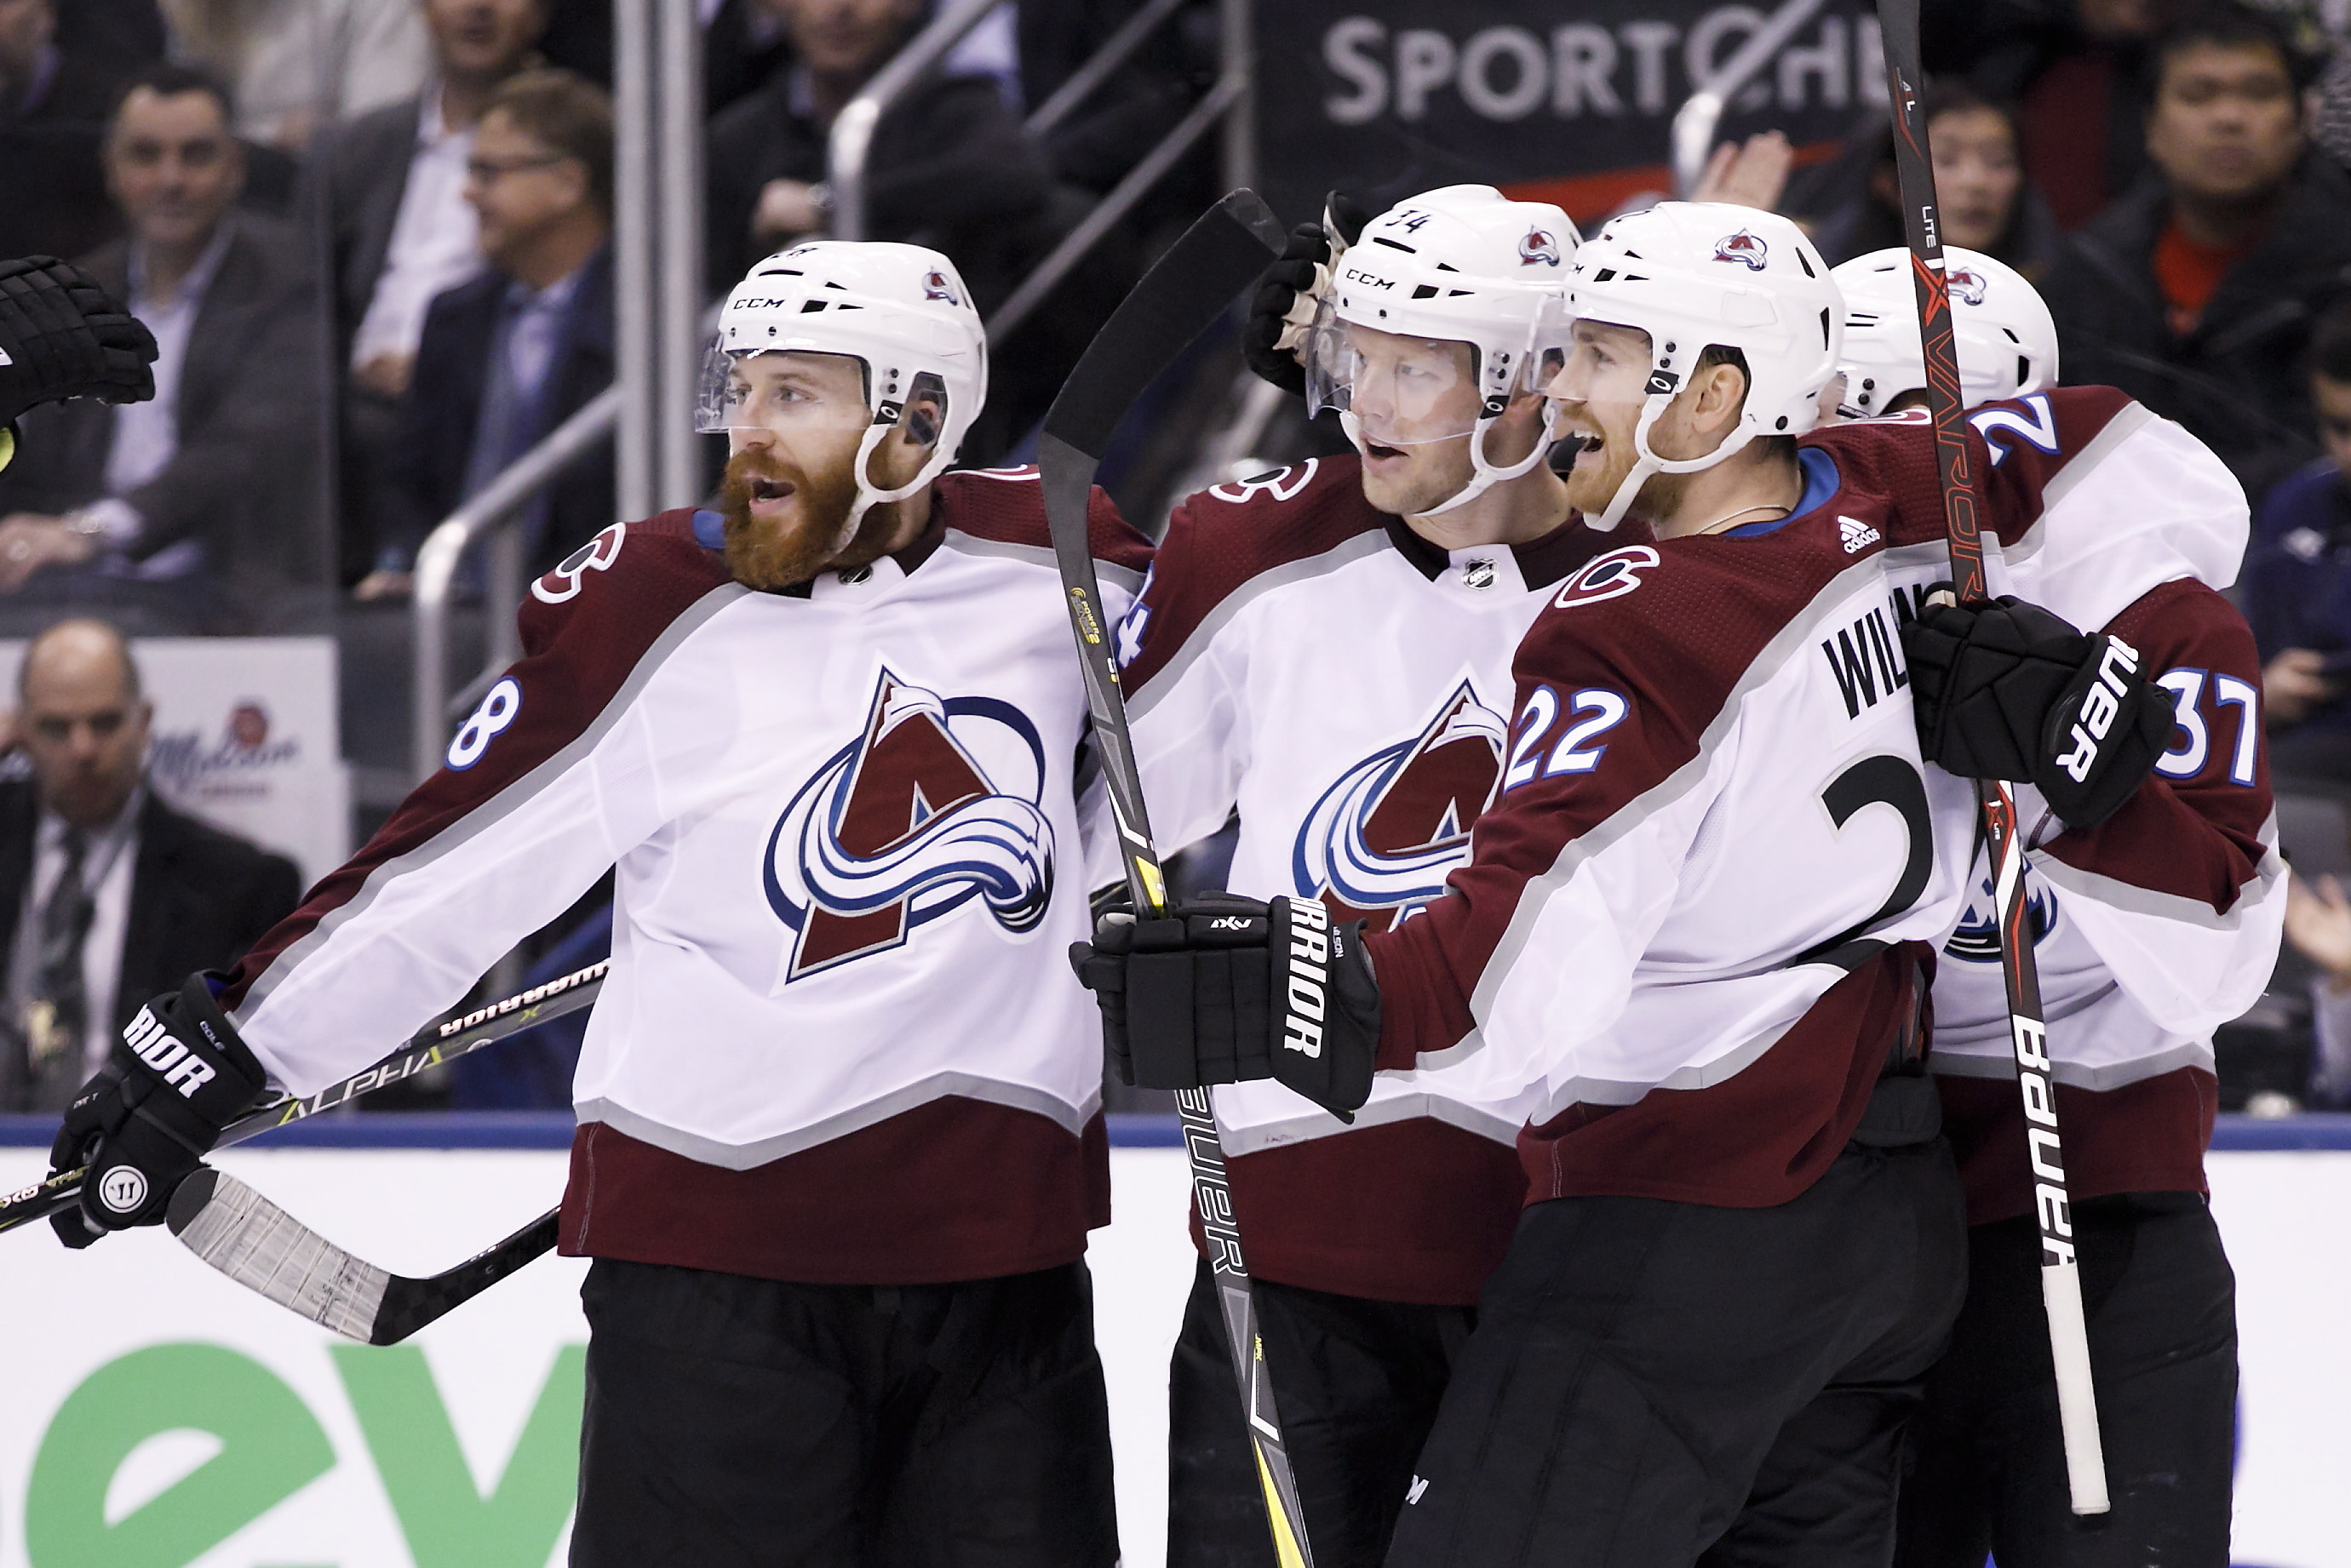 bf3afa22a58 Colorado Avalanche players celebrate centre Carl Soderberg's (34) game  winning goal against the Toronto Maple Leafs during third period action in  ...